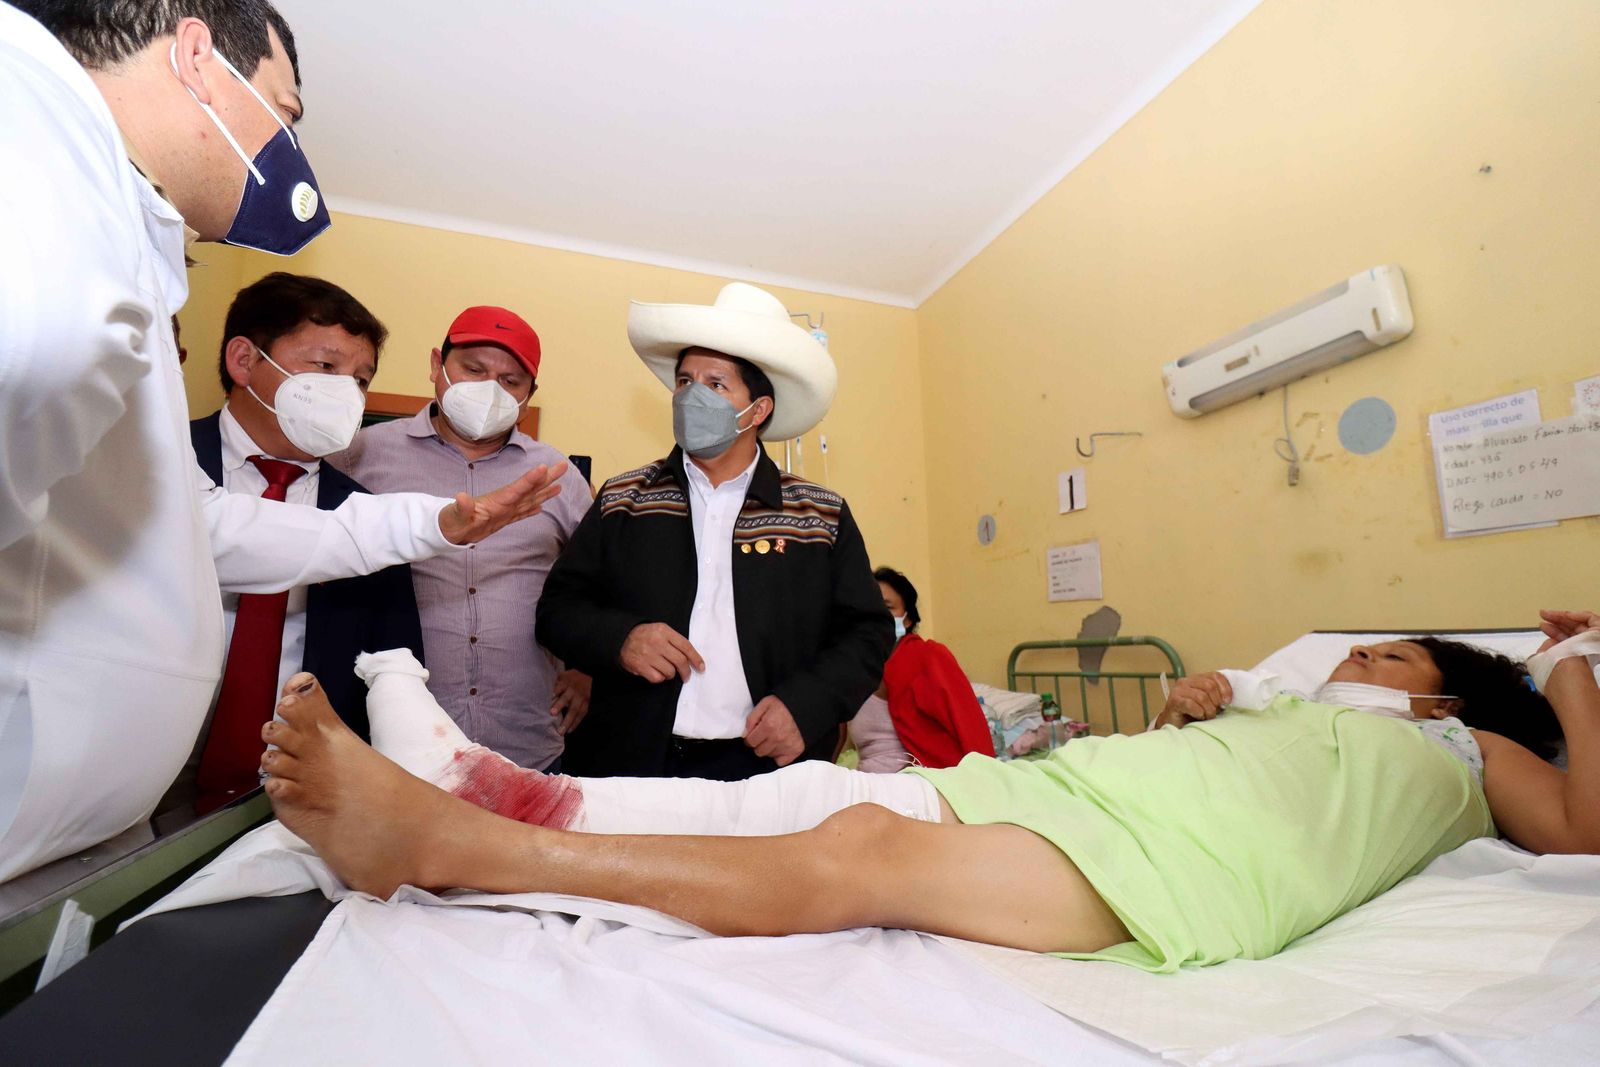 At least 41 injured, 3 of them serious, after earthquake in northern Peru